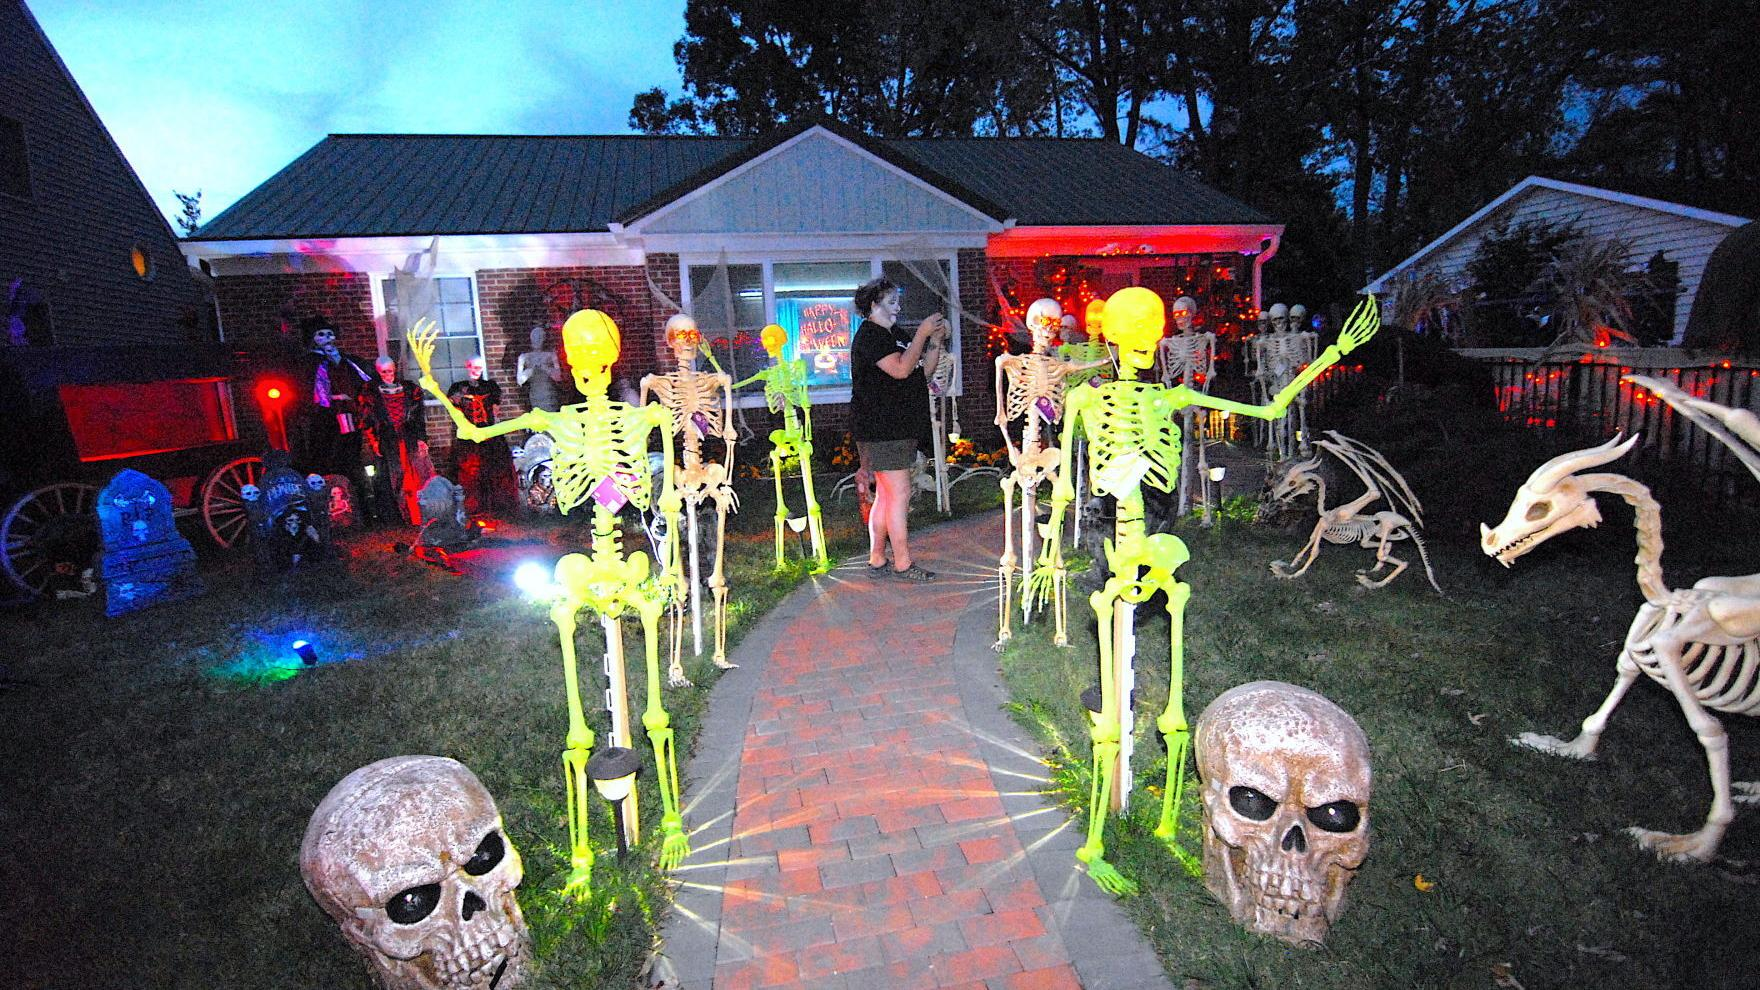 St. Michaels considering whether to have Halloween events in year of COVID-19